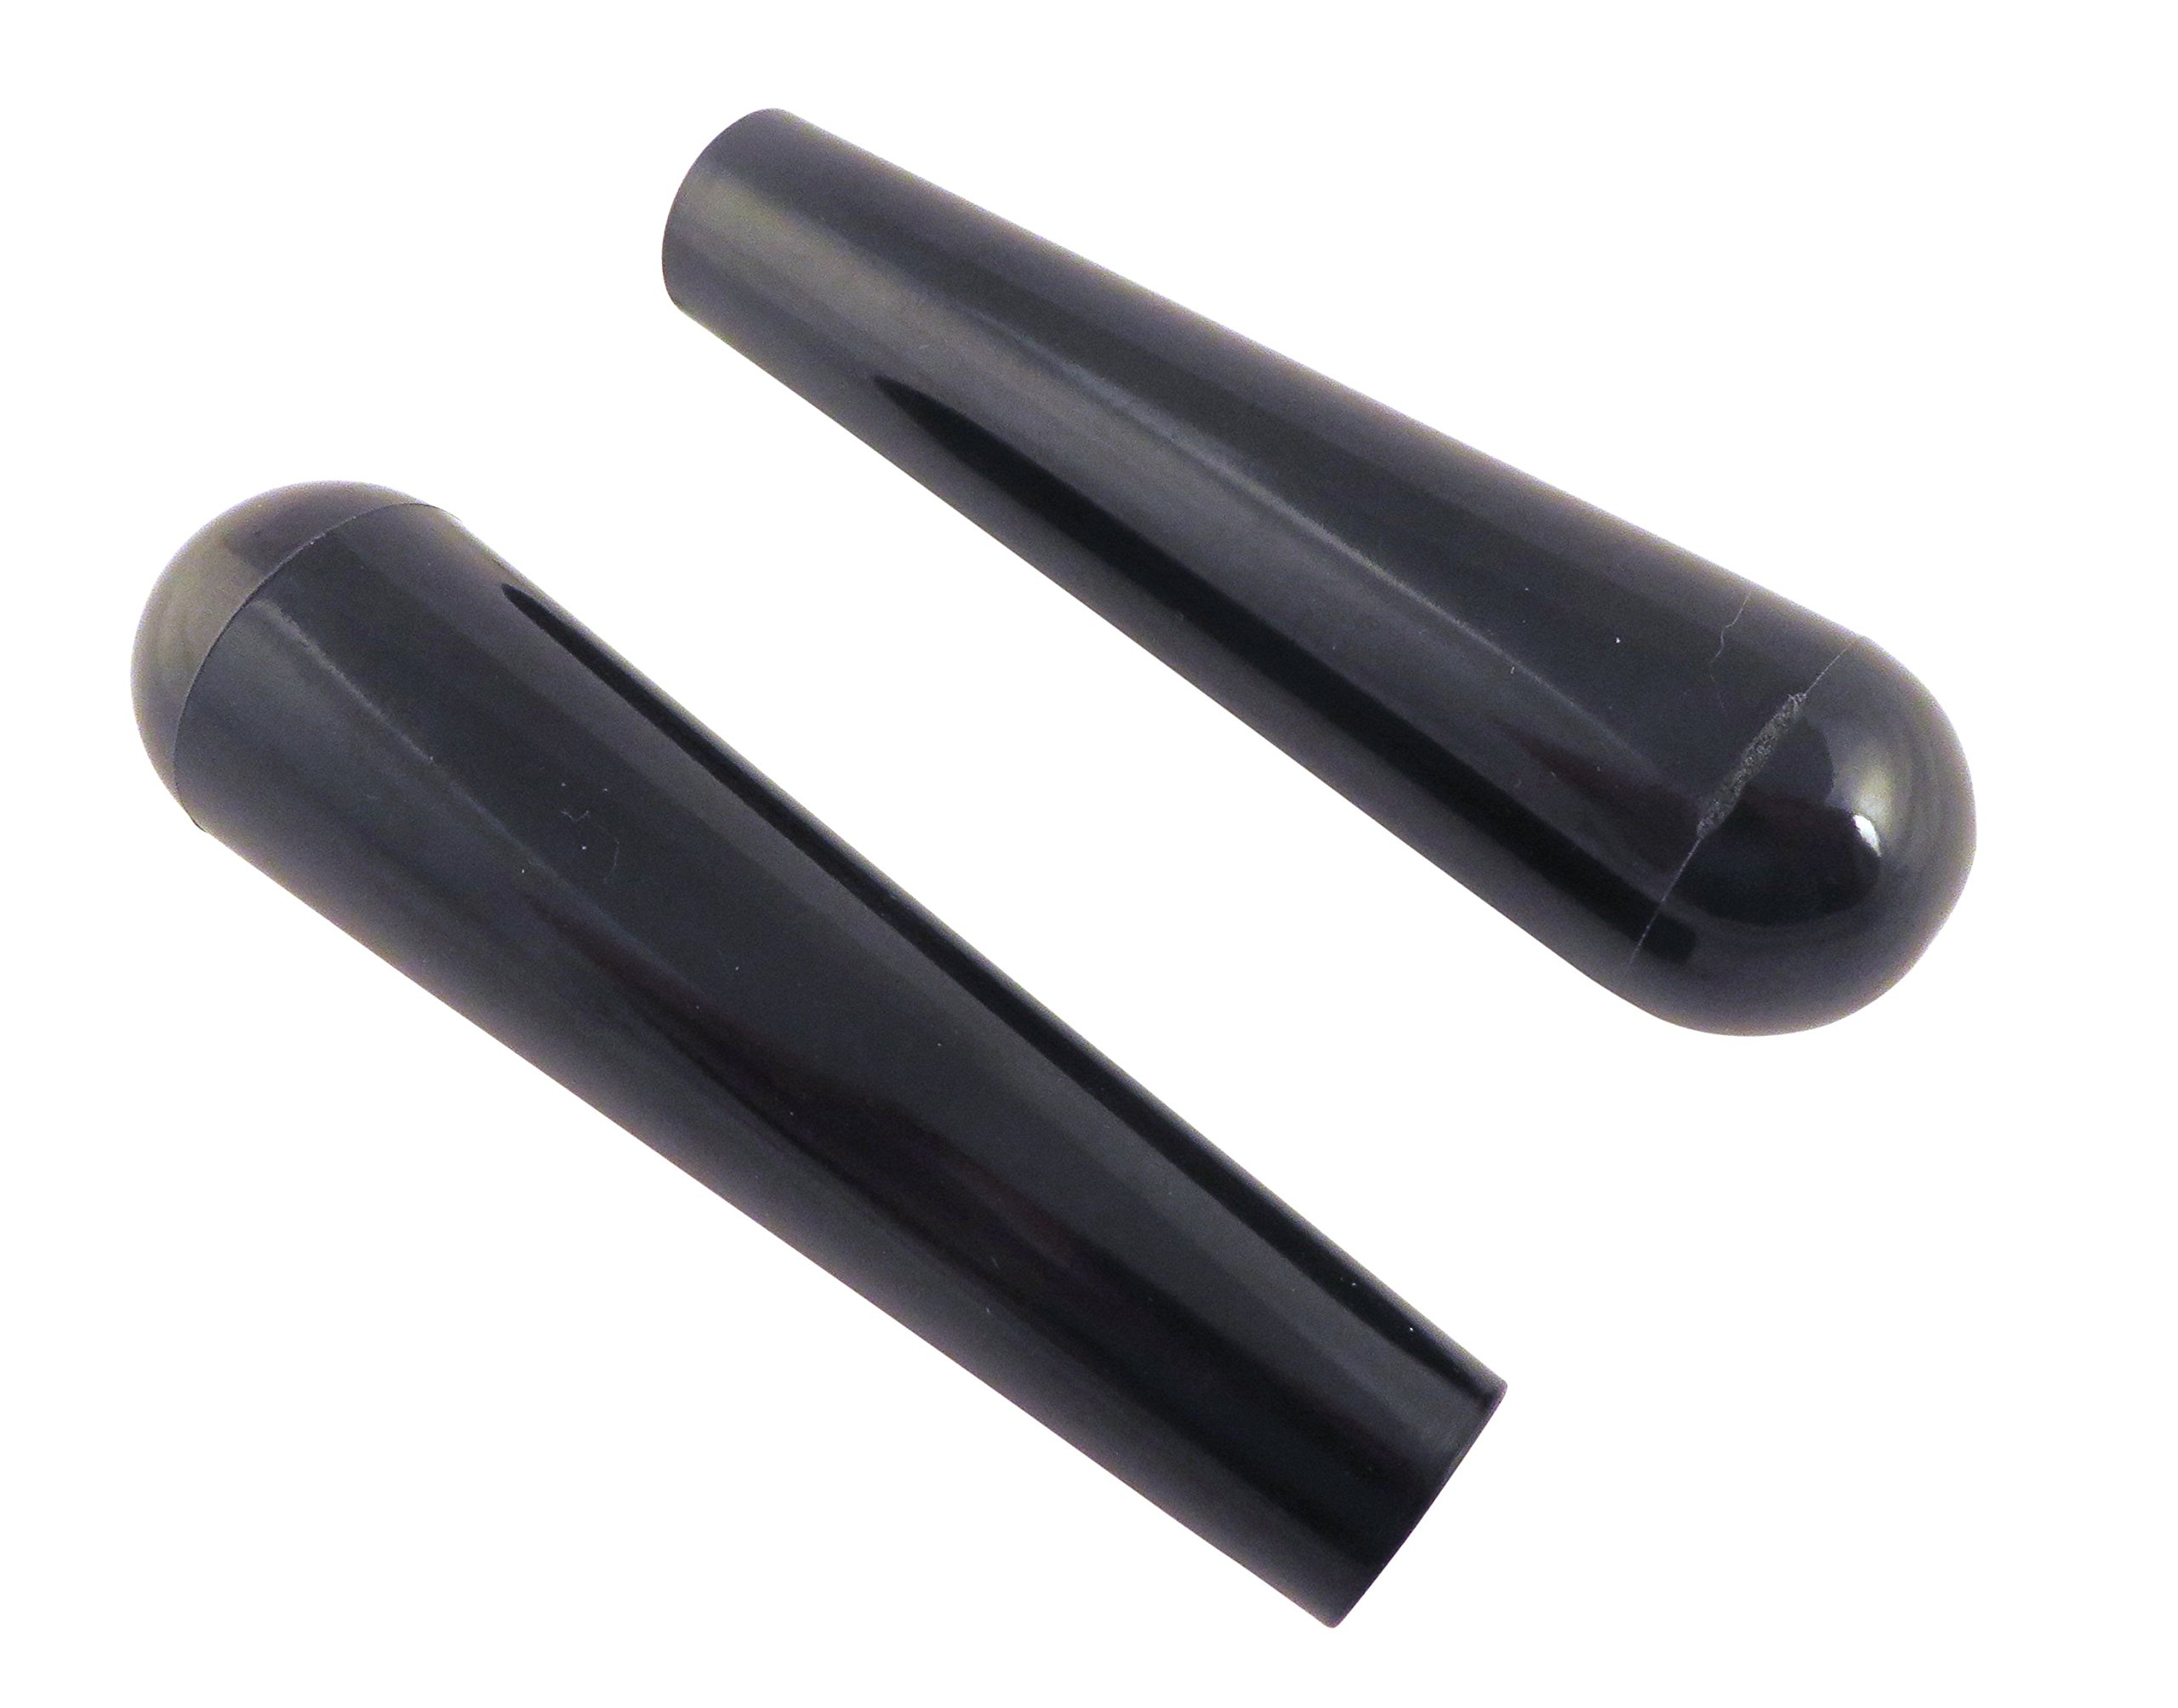 """2 Each 3 3/4"""" Phenolic Tapered Handle Post Knob with 1/4 20 Threaded Insert for Shop Jigs and Fixtures PK-1/4X2"""